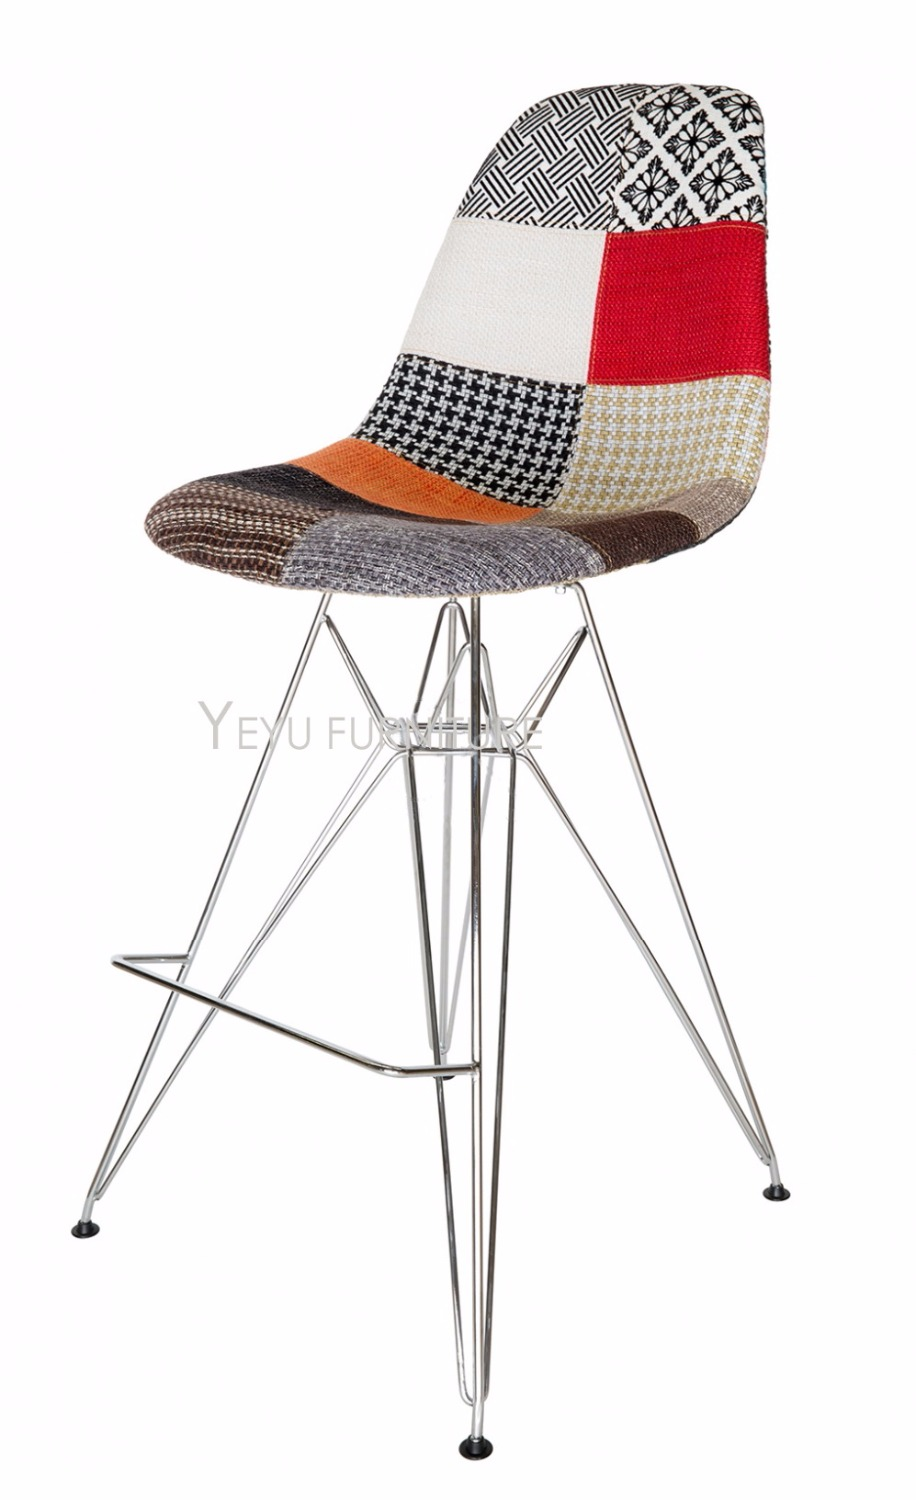 Swell Us 219 0 Modern Design Patchwork Fabric Soft Cover Metal Base Bar Chair Bar Counter Stool Living Room Fashion Furniture Stool High Stool In Bar Ibusinesslaw Wood Chair Design Ideas Ibusinesslaworg